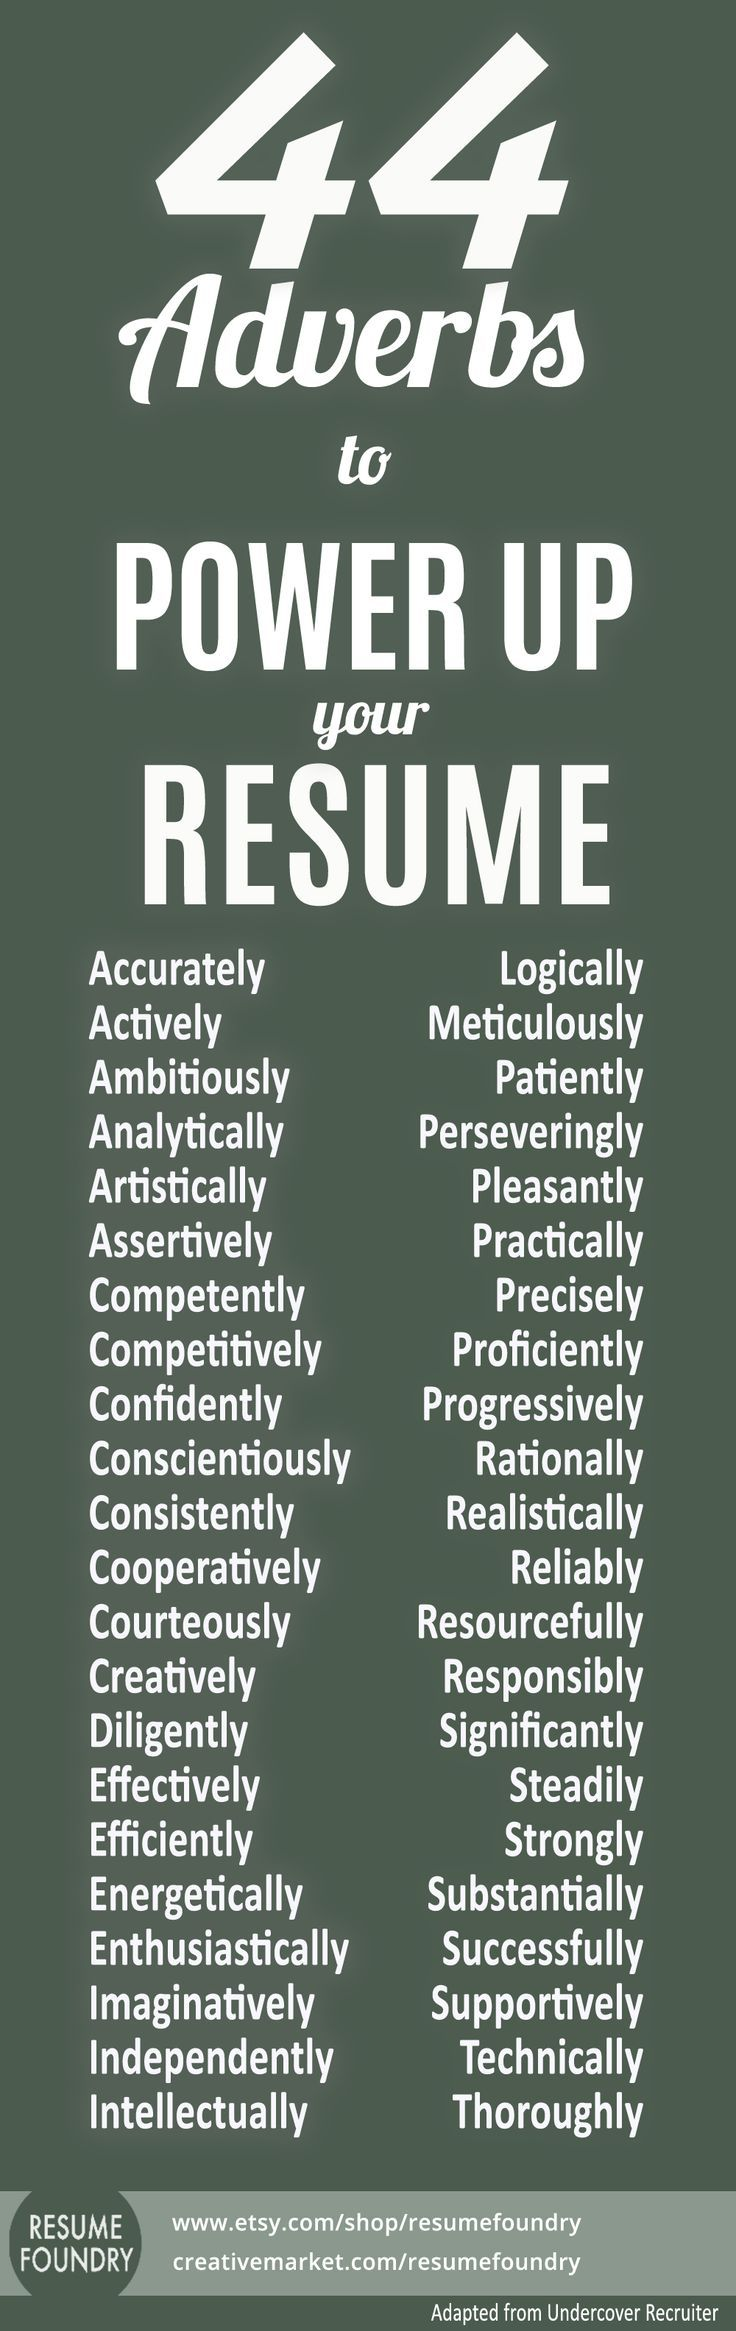 Resume tips, resume skill words, resume verbs, resume experience ...